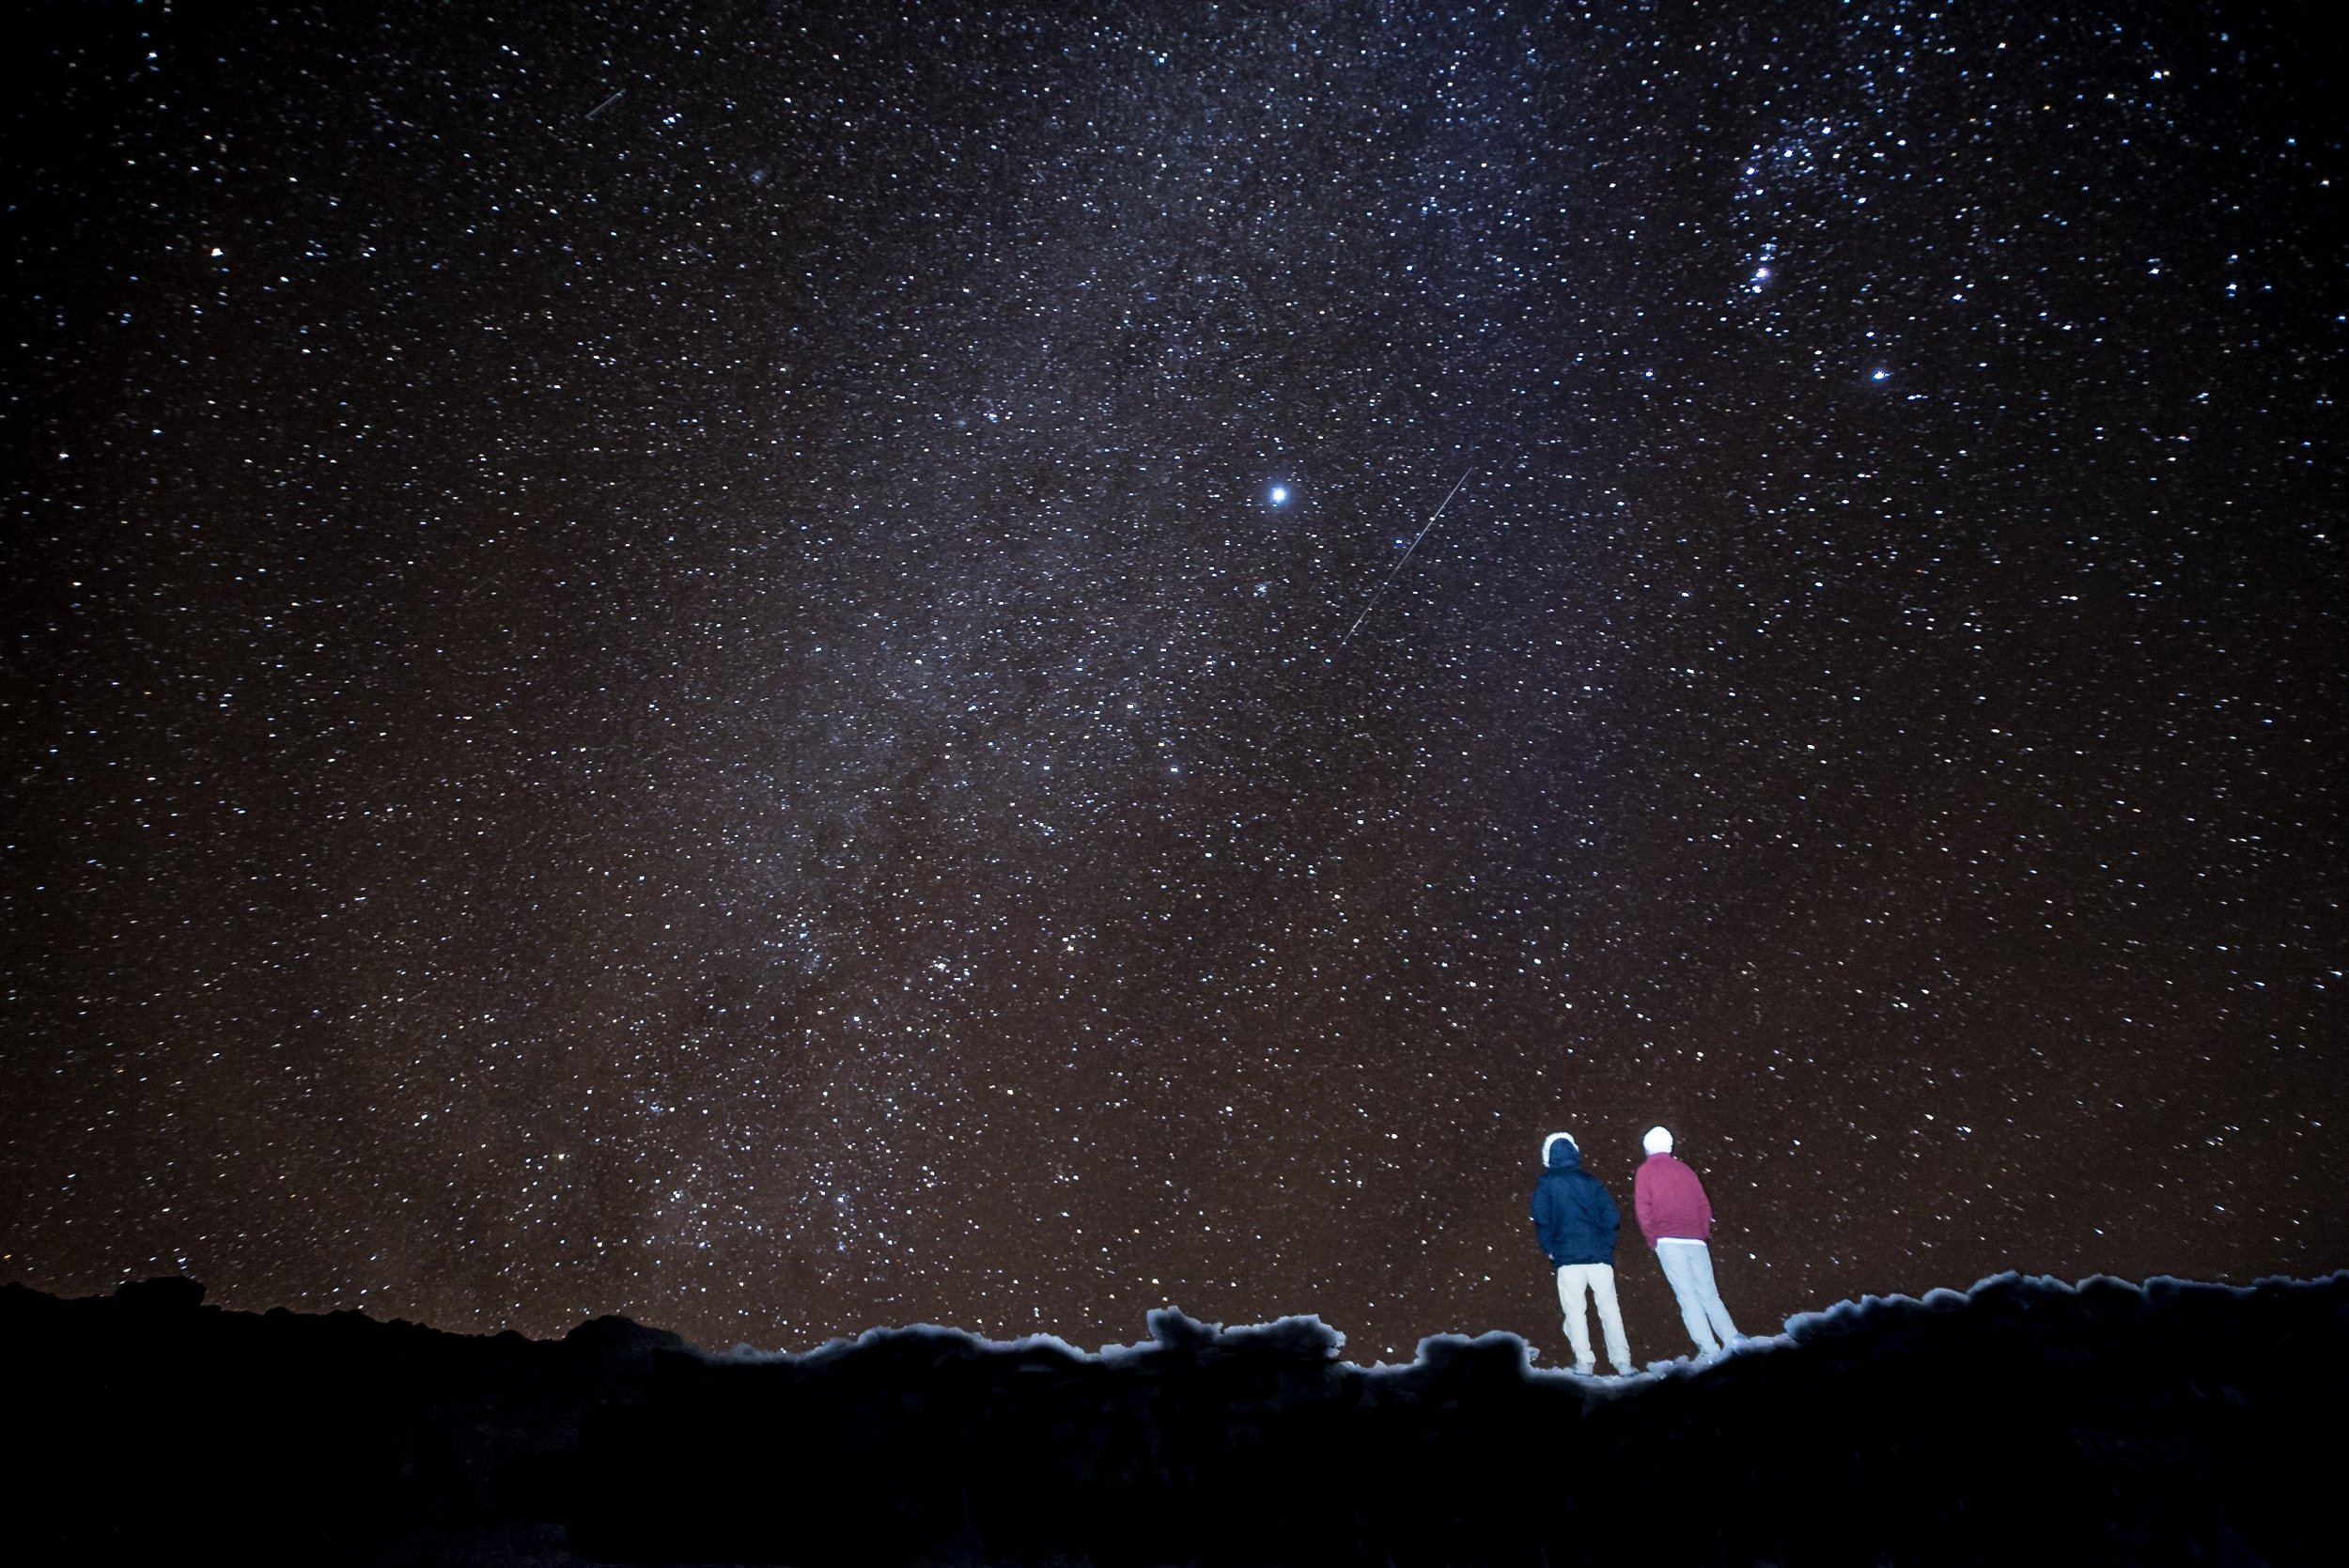 Watching the stars with the bro